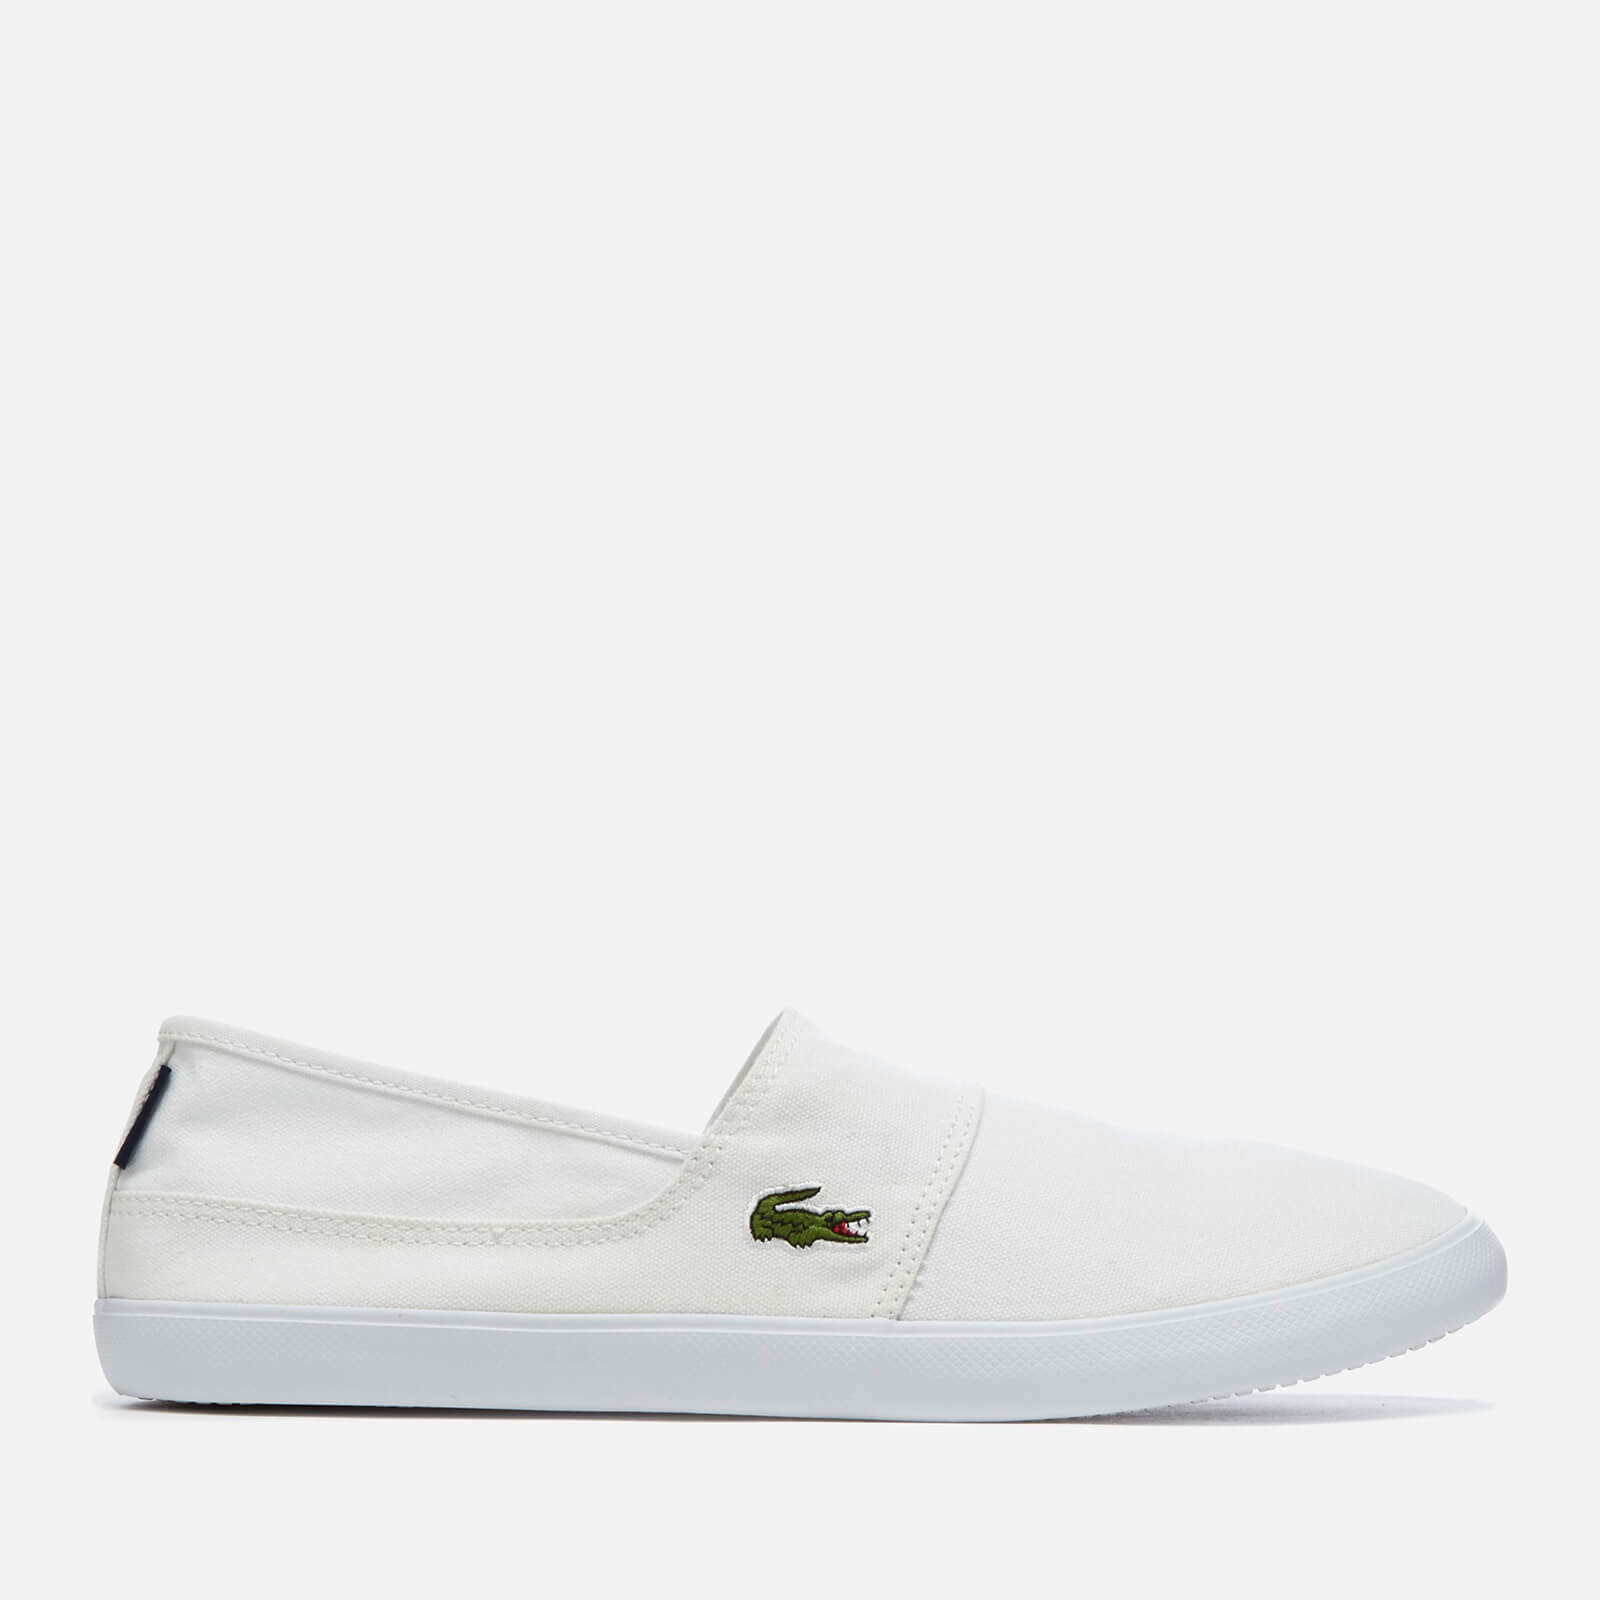 a4880b6bc Lacoste Men s Marice Bl 2 Canvas Slip-On Pumps - White - Free UK Delivery  over £50